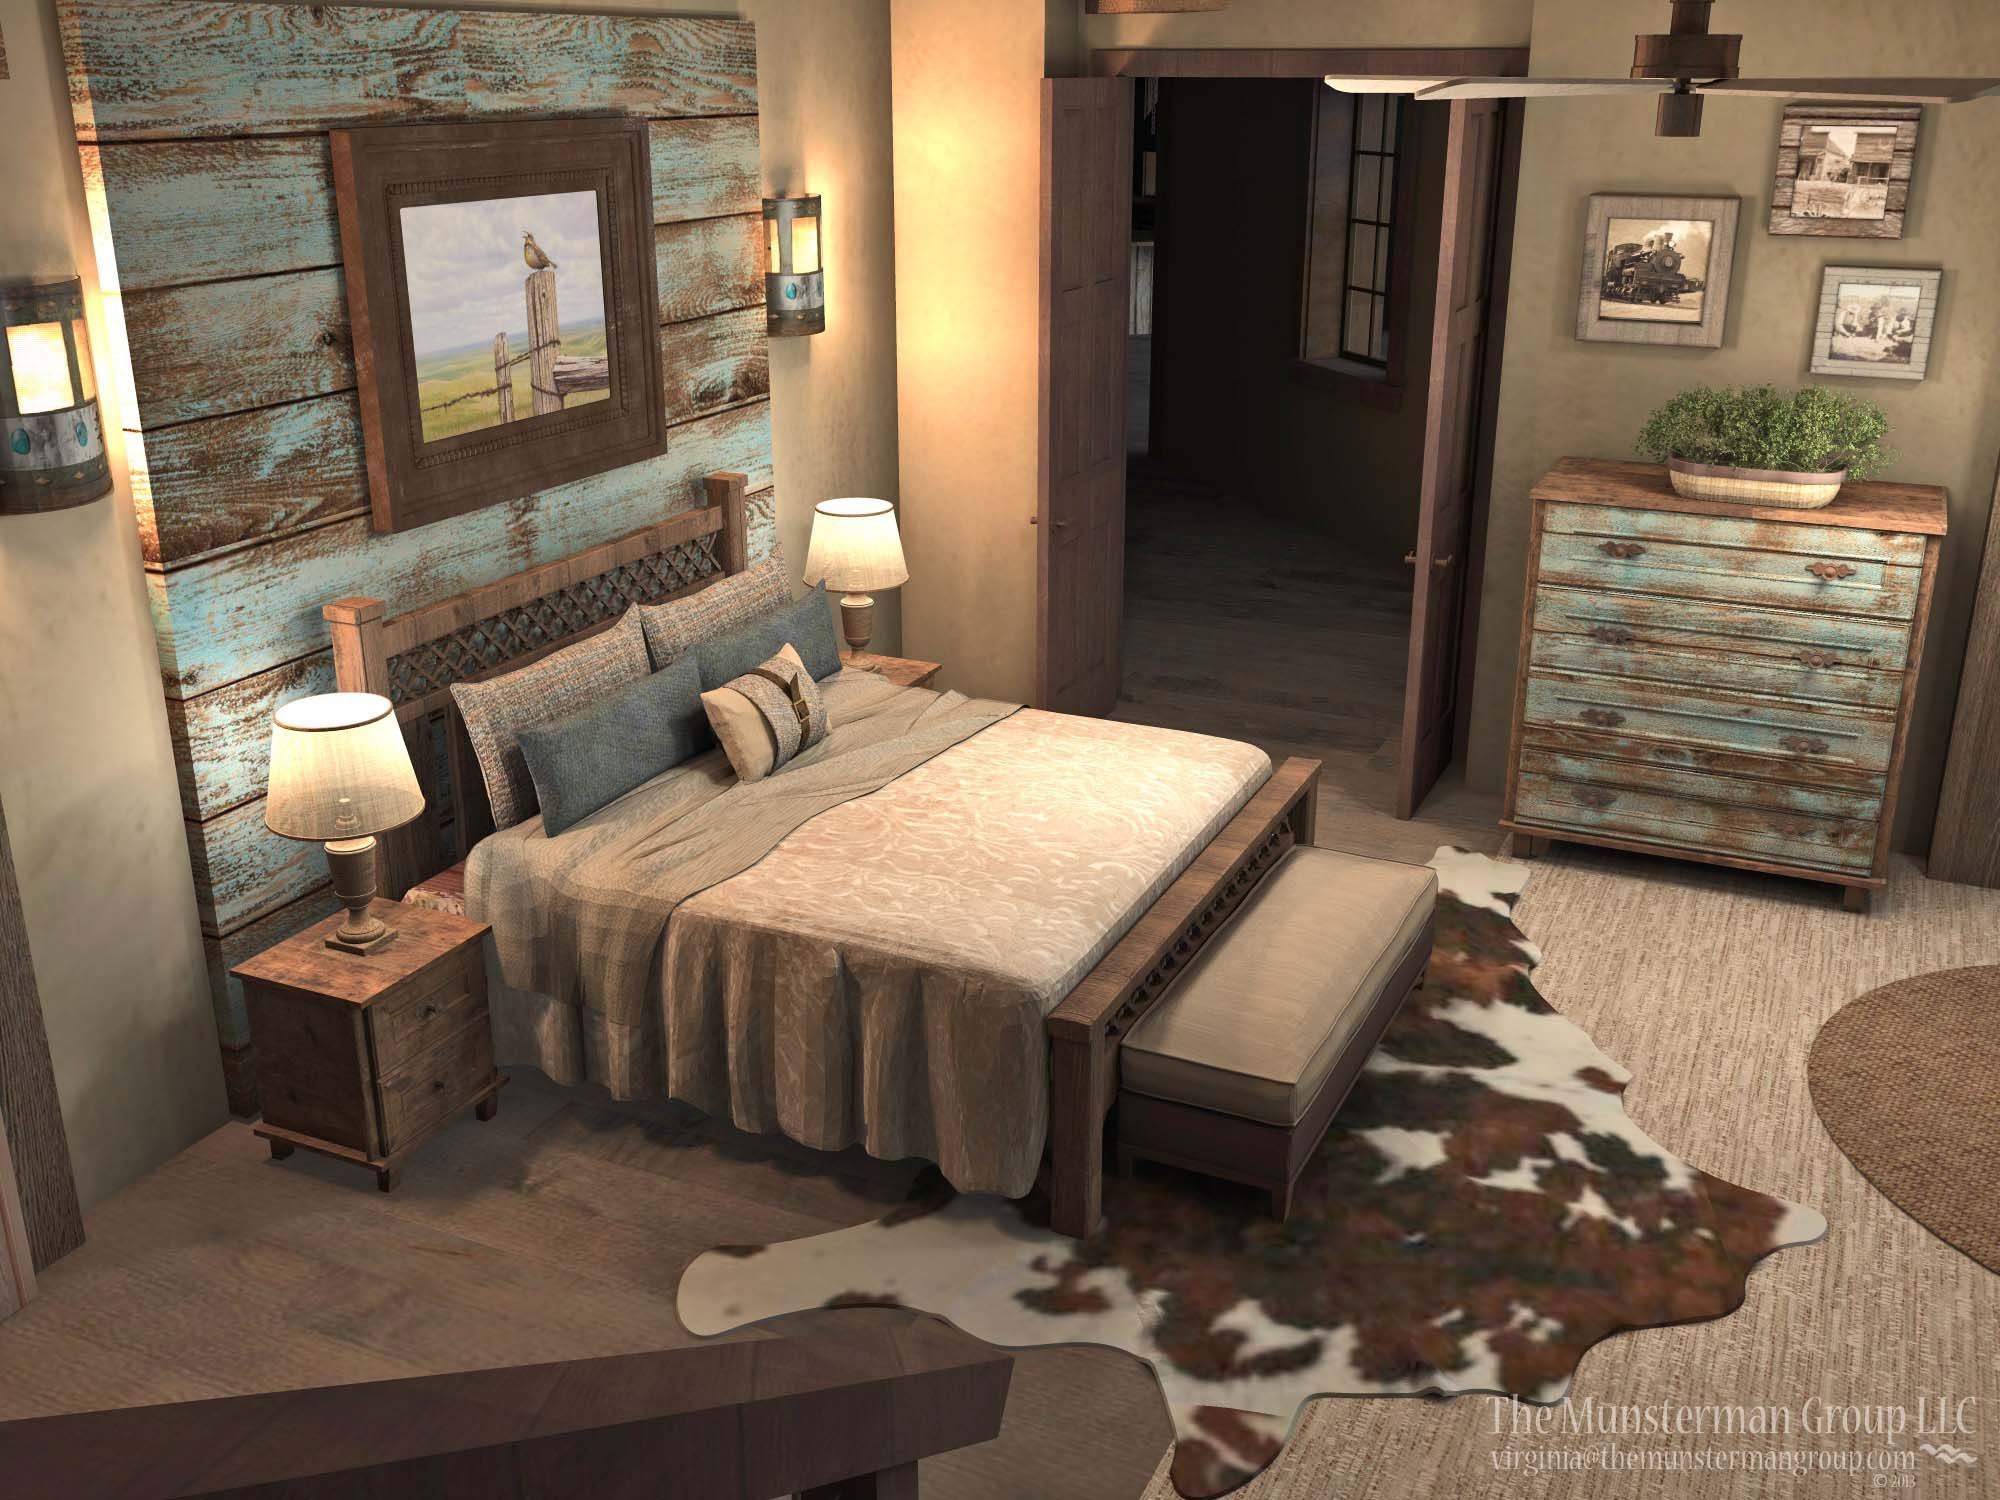 Master Bedroom Design Concept. Turquoise Wash Barnwood, Neutral Palette,  Browns And Coppers, Textural Elements Like Rug And Metal Picture Frame.  9.9.13